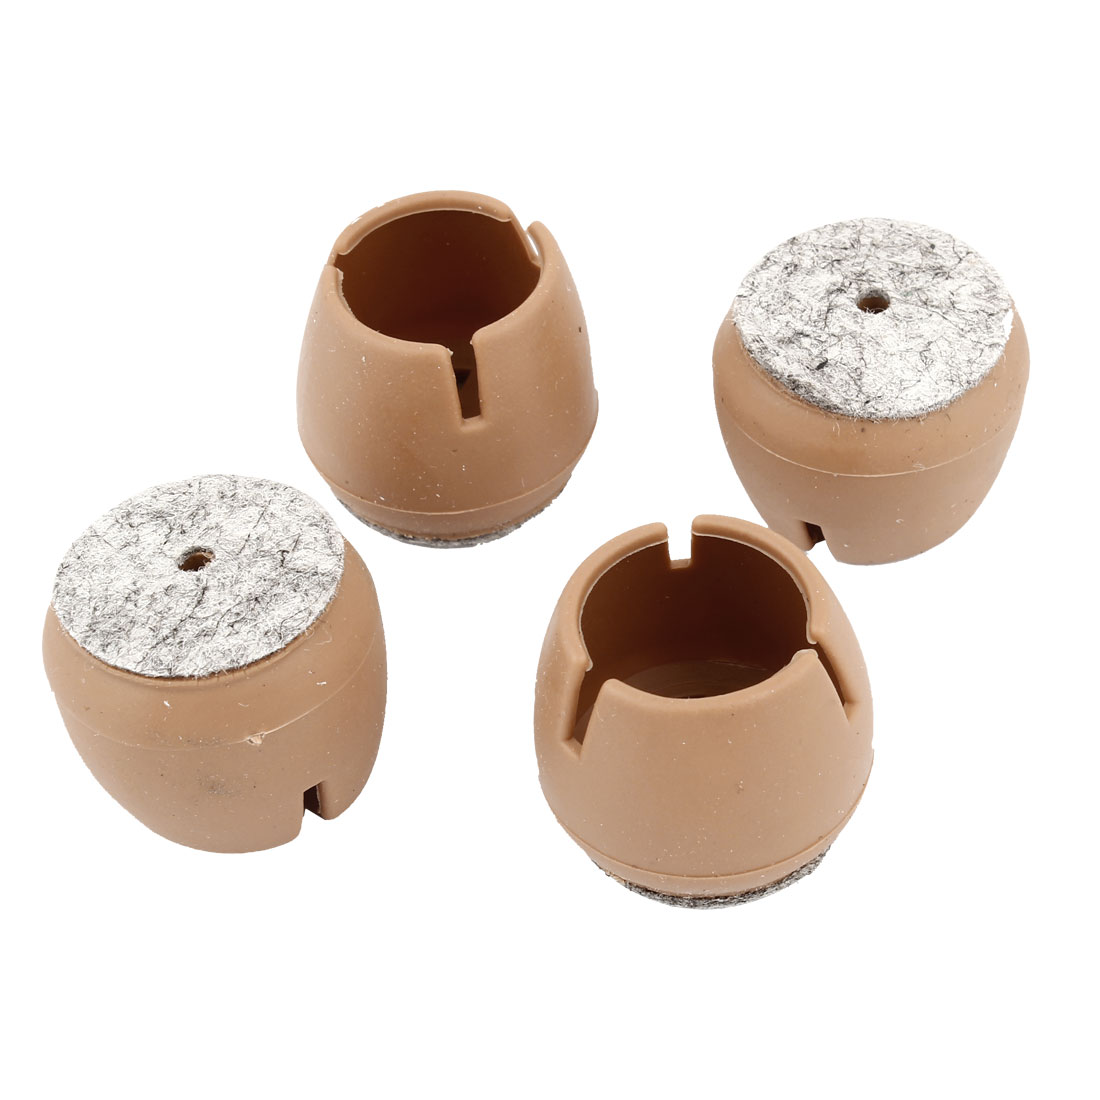 4 Pcs 30mm Dia Furniture Table Chair Leg Plastic Foot Covers Caps Protectors